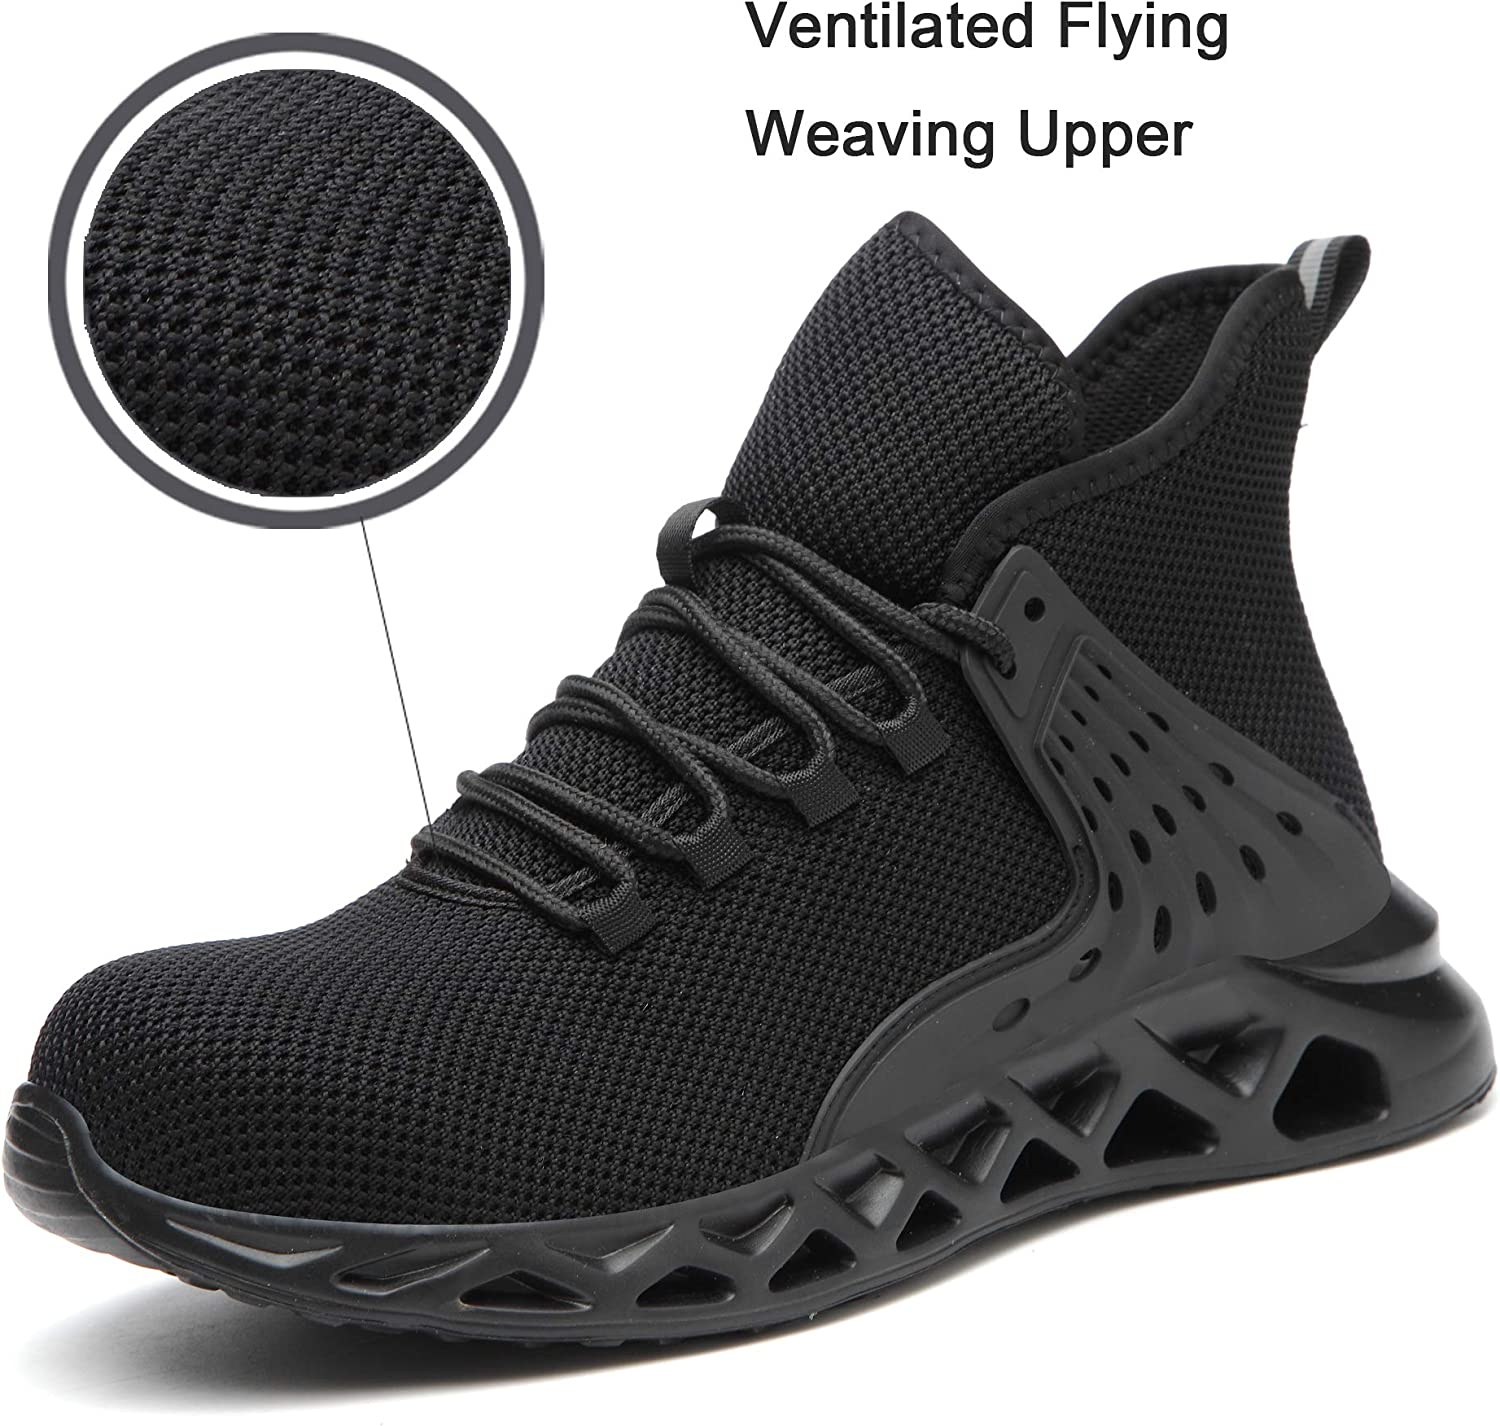 RAYDLINX Work Steel Toe Safety Shoes